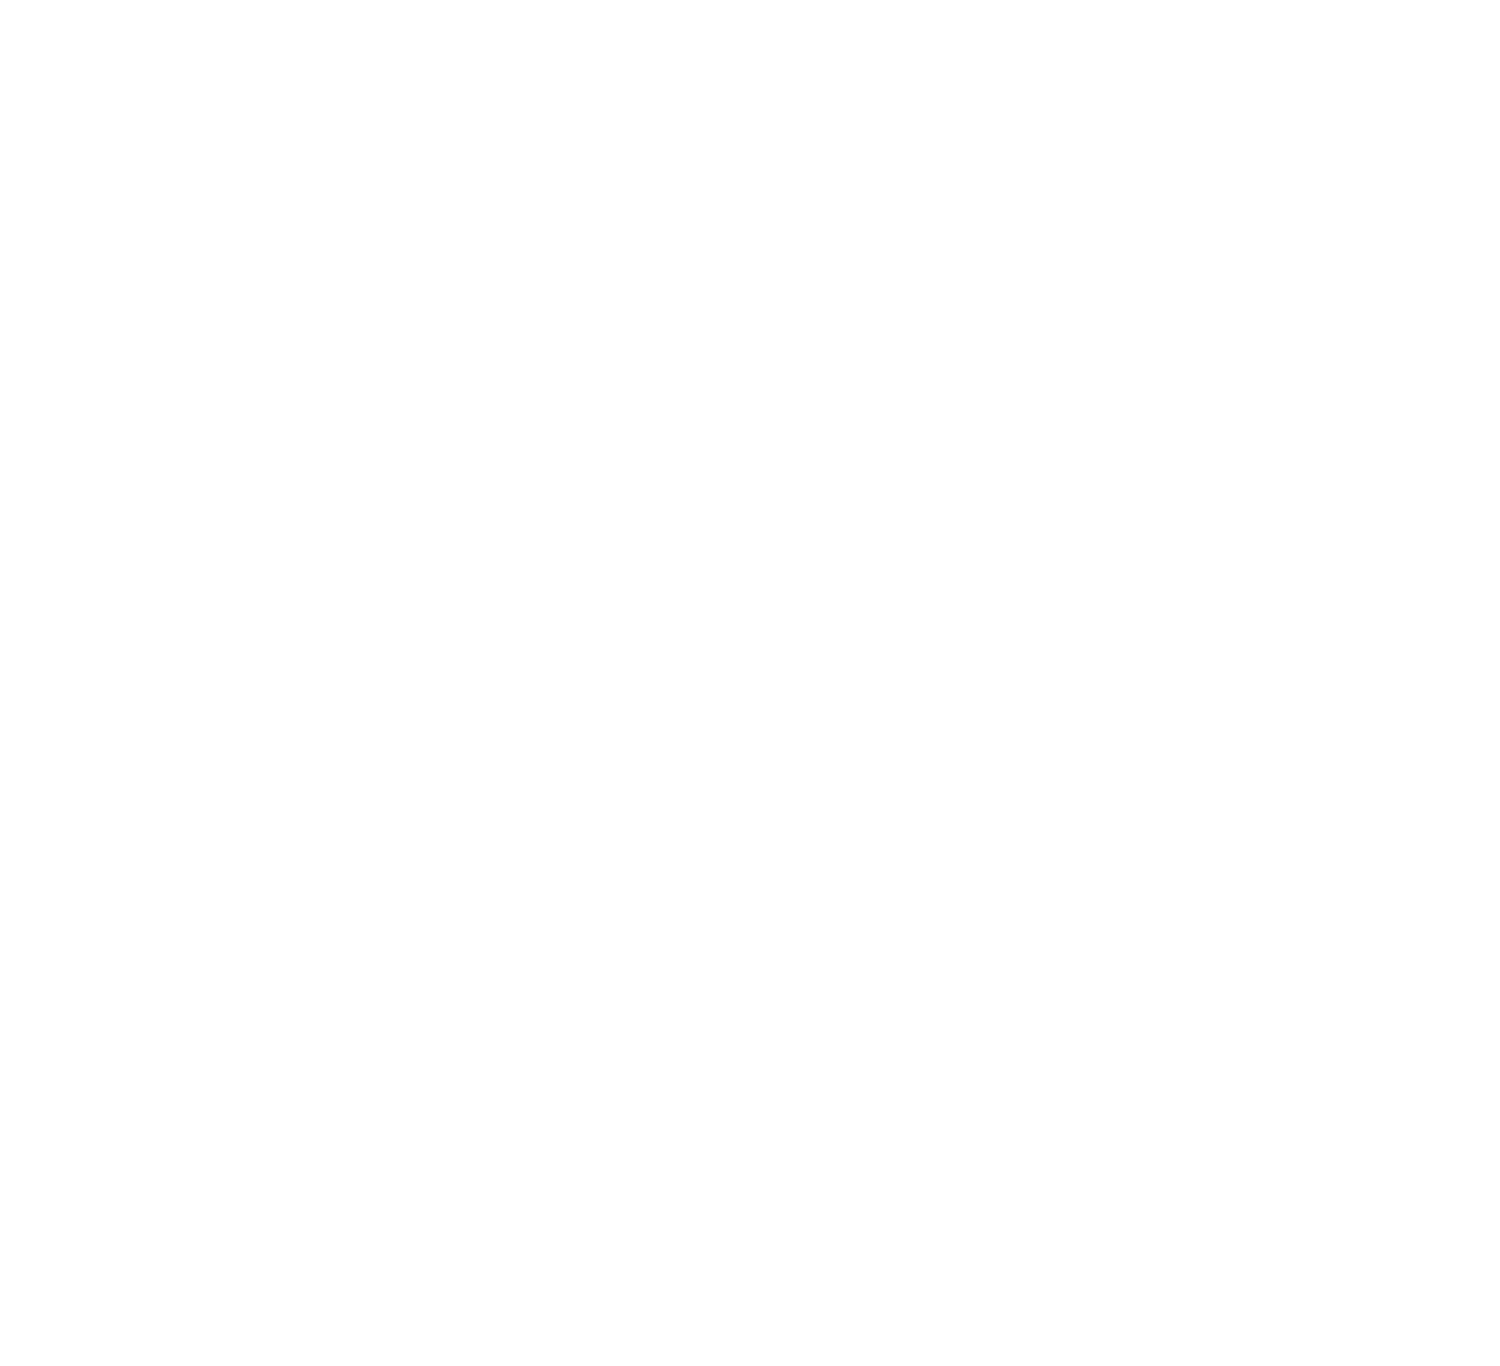 Third Eye Film Festival